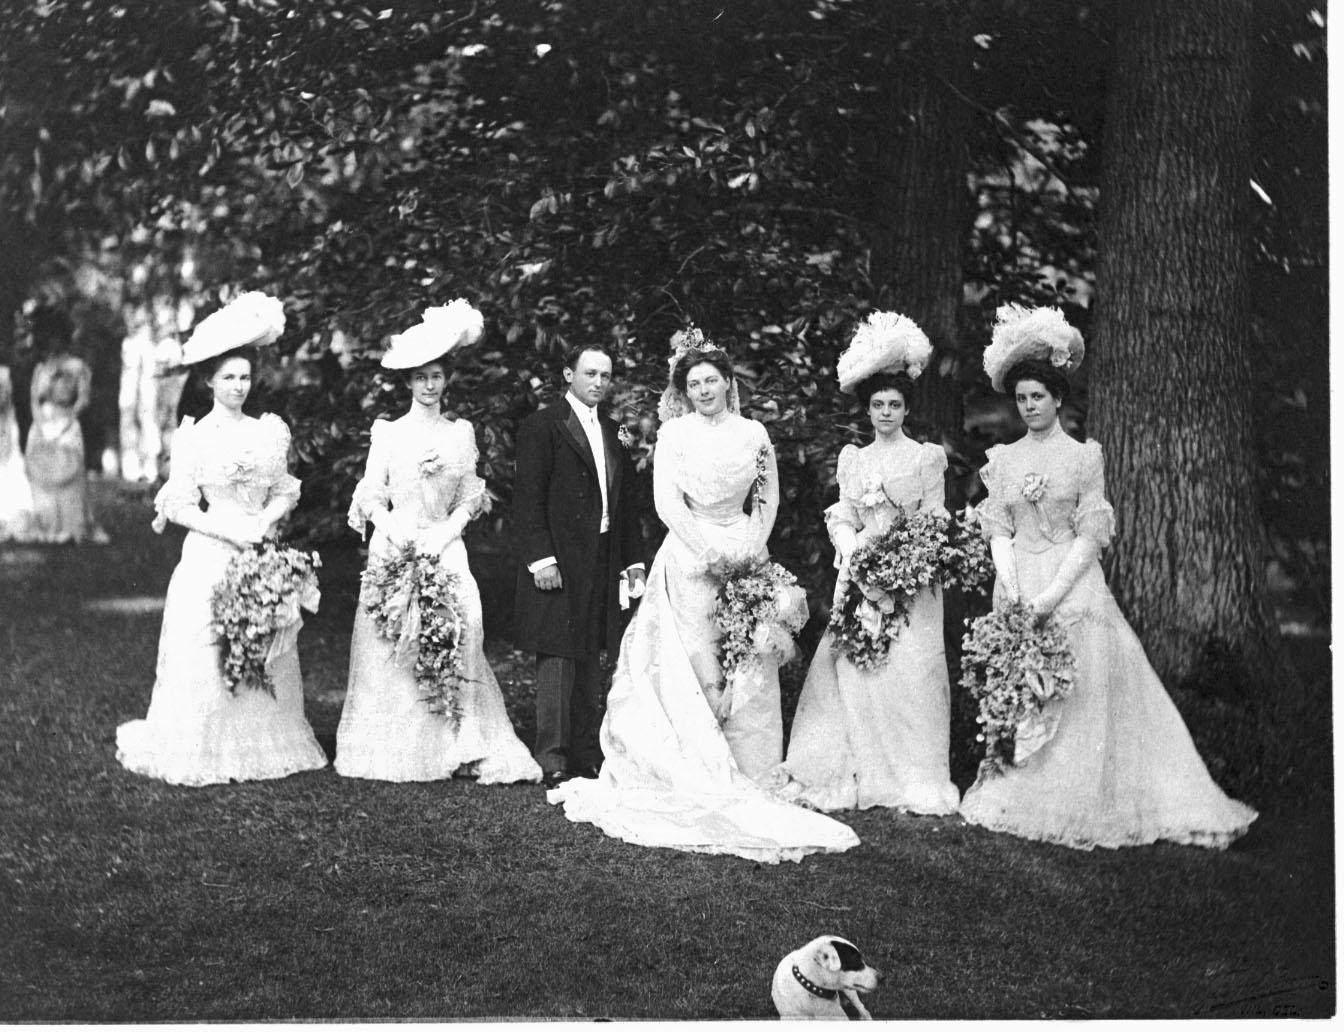 The First Wedding at